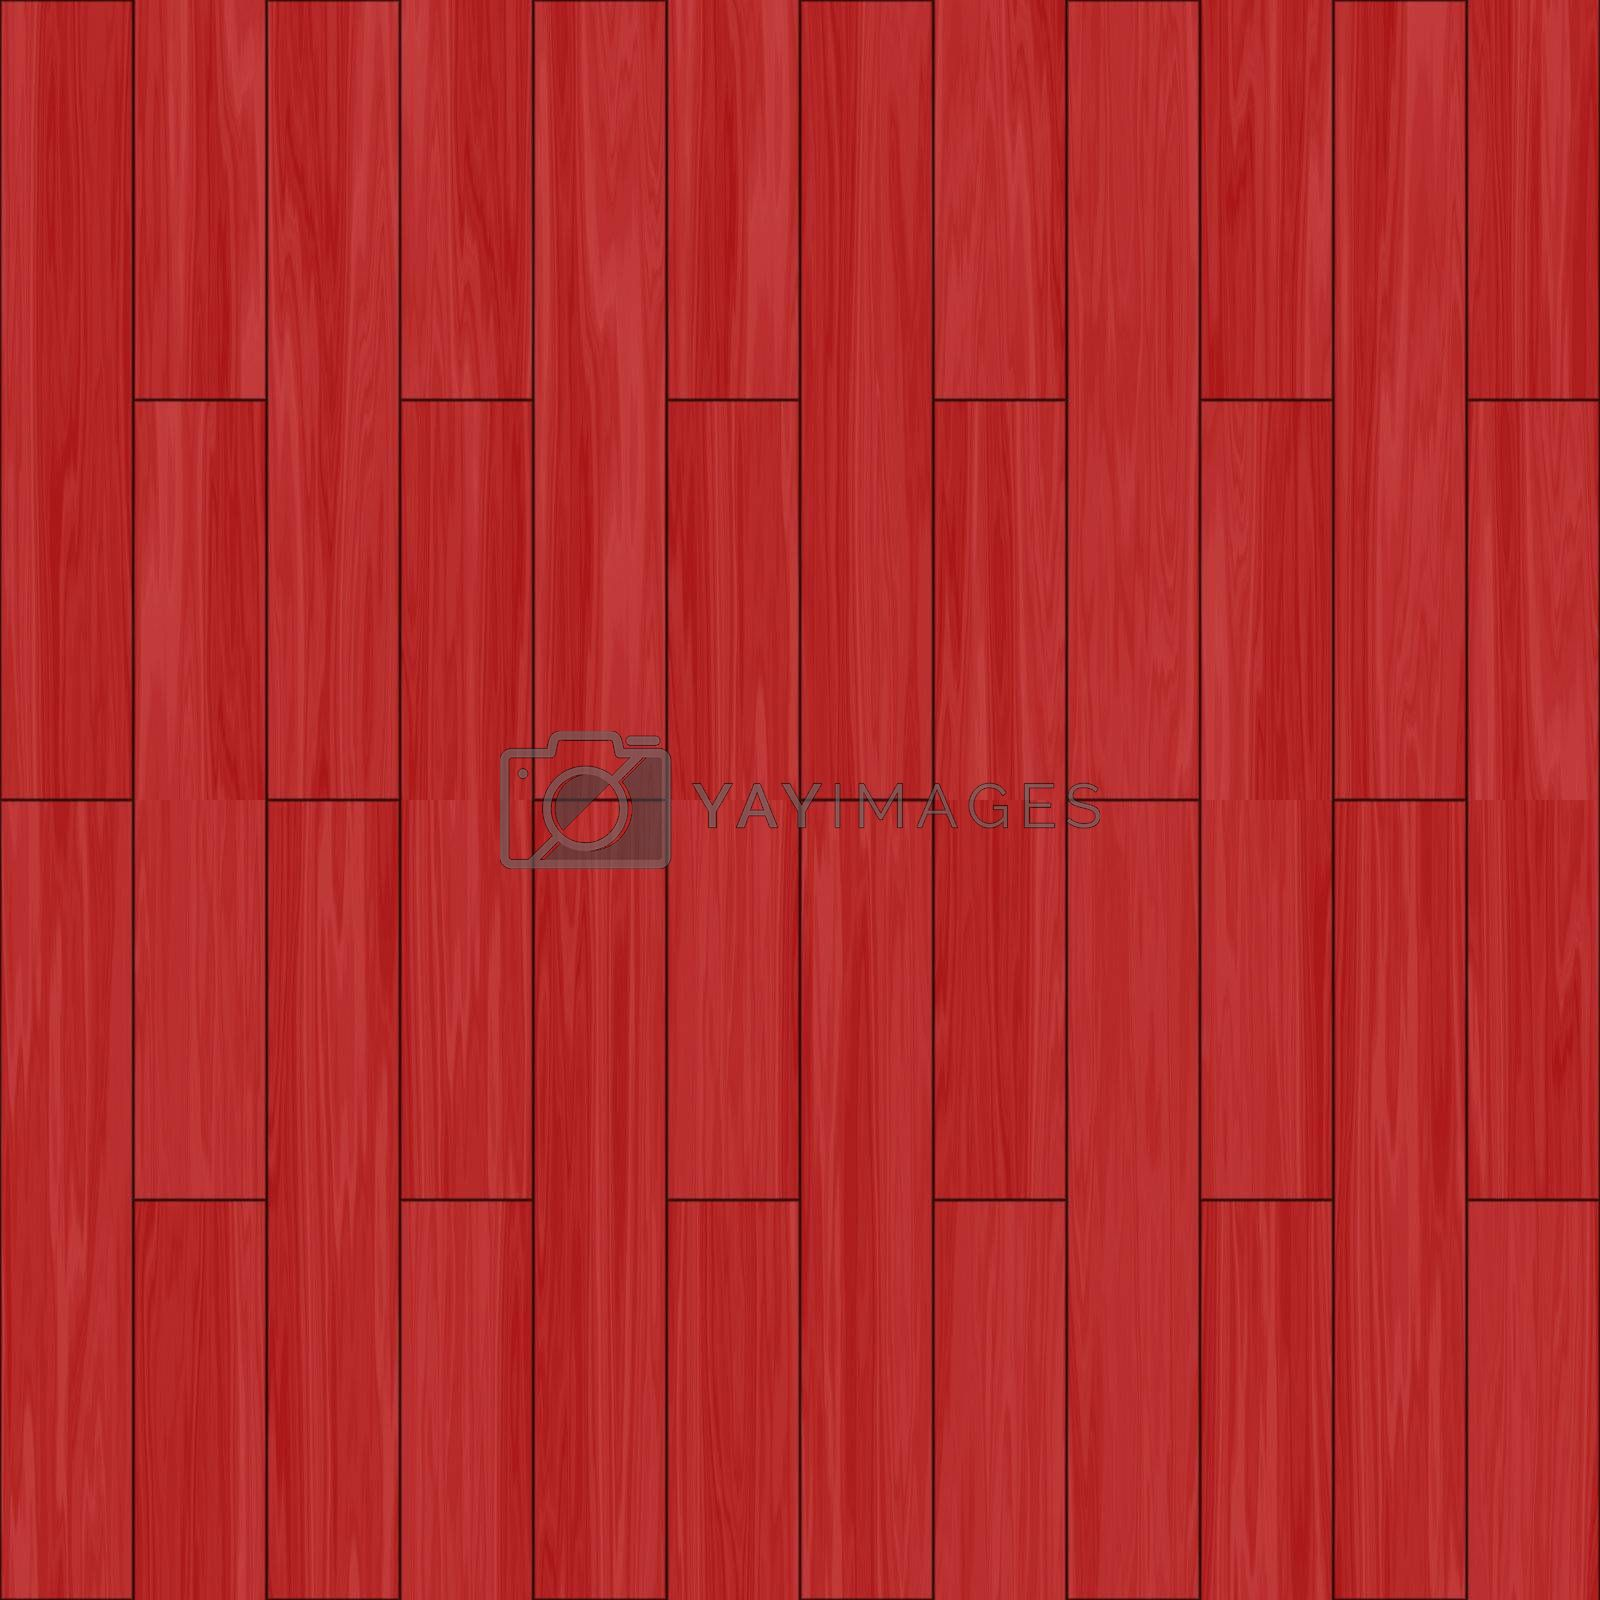 Wooden parquet natural finish seamless tiling texture background